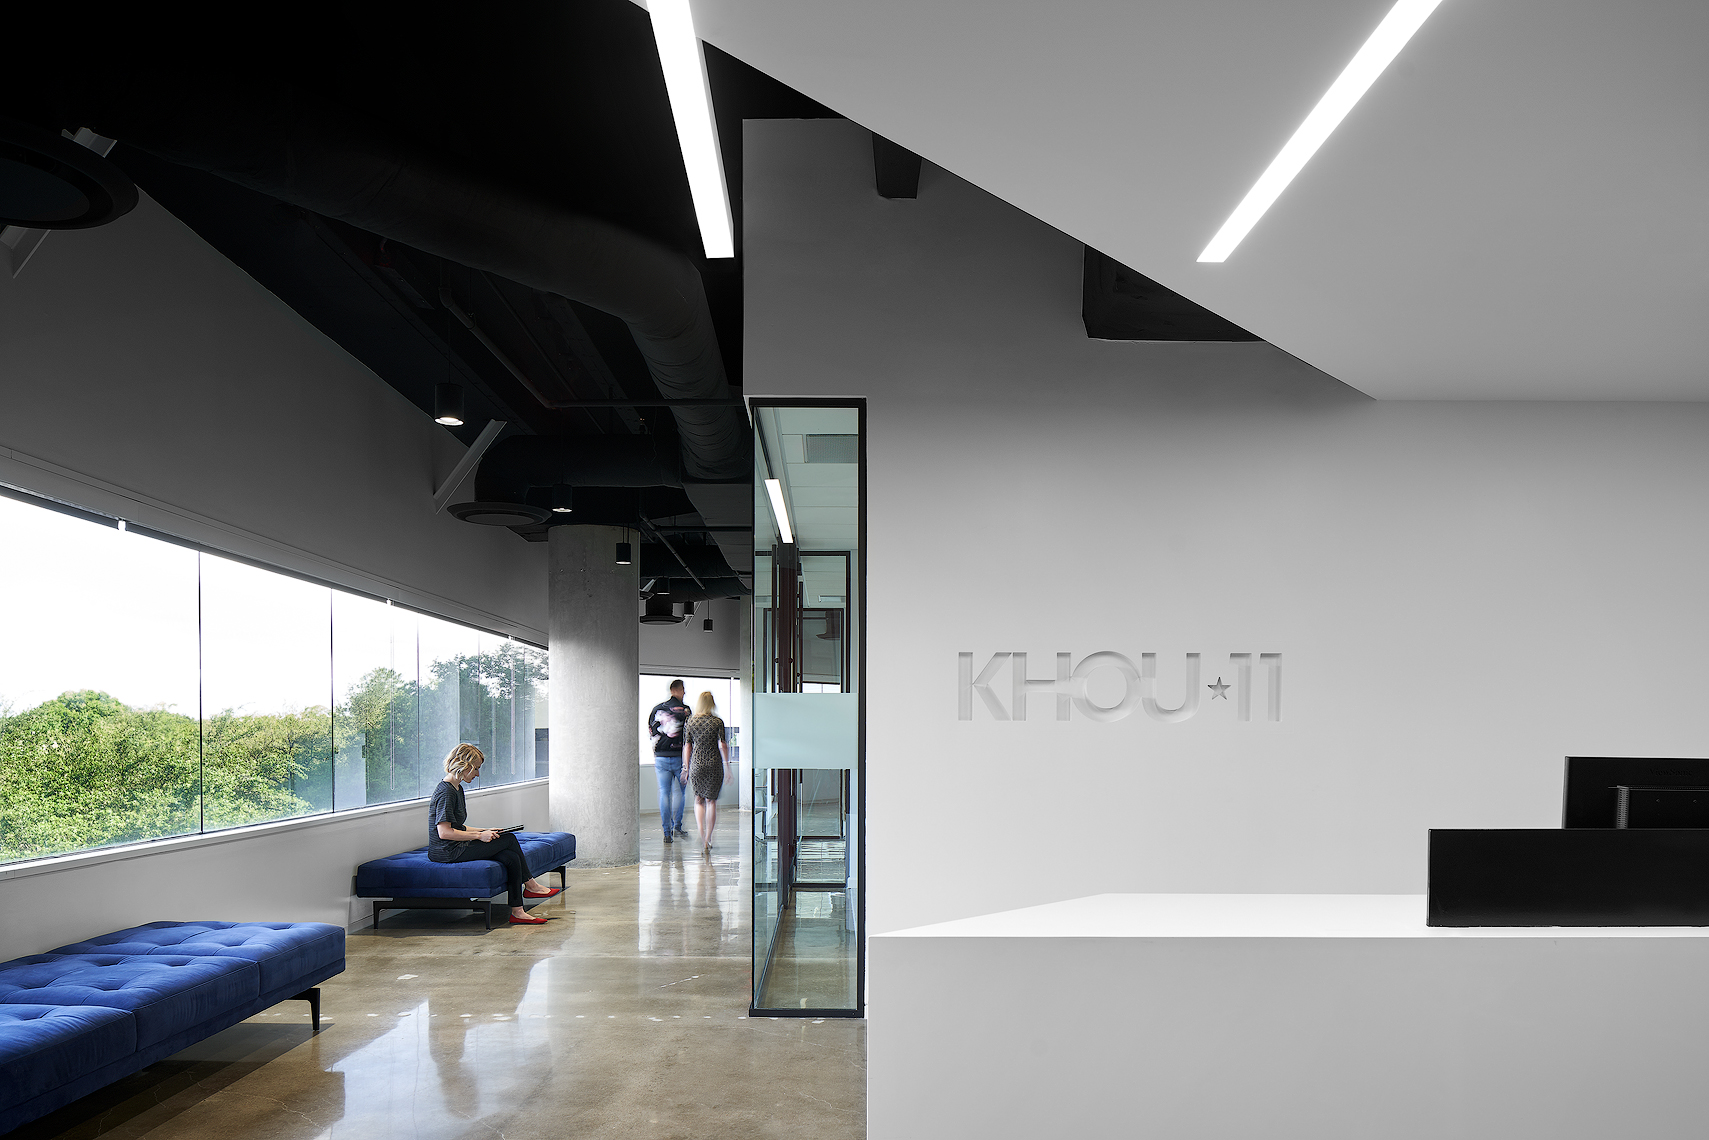 KHOU 11 photography by Dror Baldinger architectural photography